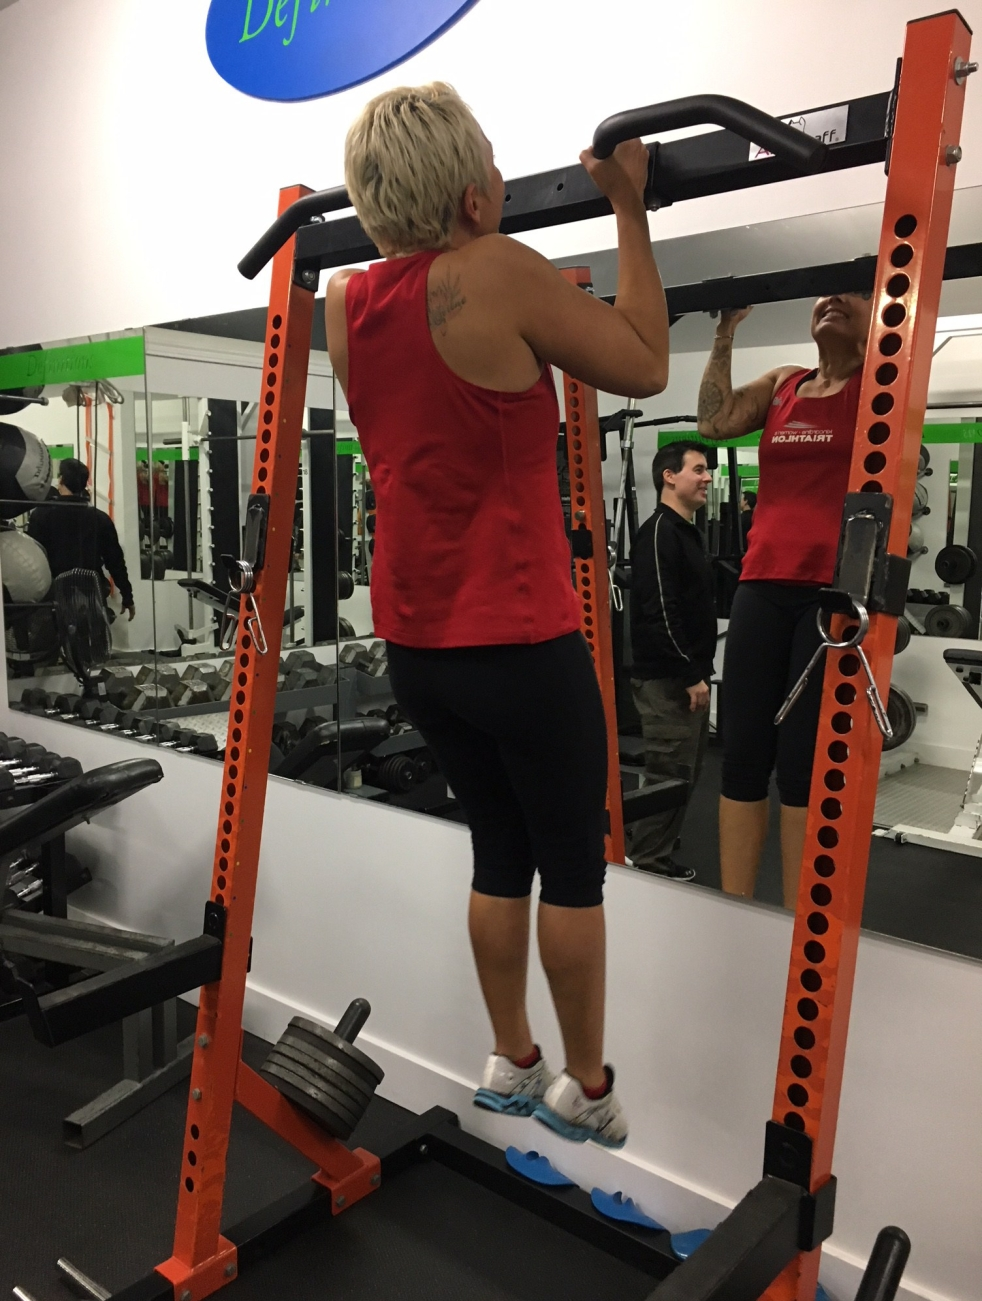 Image description: Tracy (short blond hair, red tank, black capris, white shoes, rear view facing mirror) doing a pull-up at Definitions Fitness, with Paul visible in the mirror looking on. Photo credit: Sam, who arrived for her workout right after Tracy's.